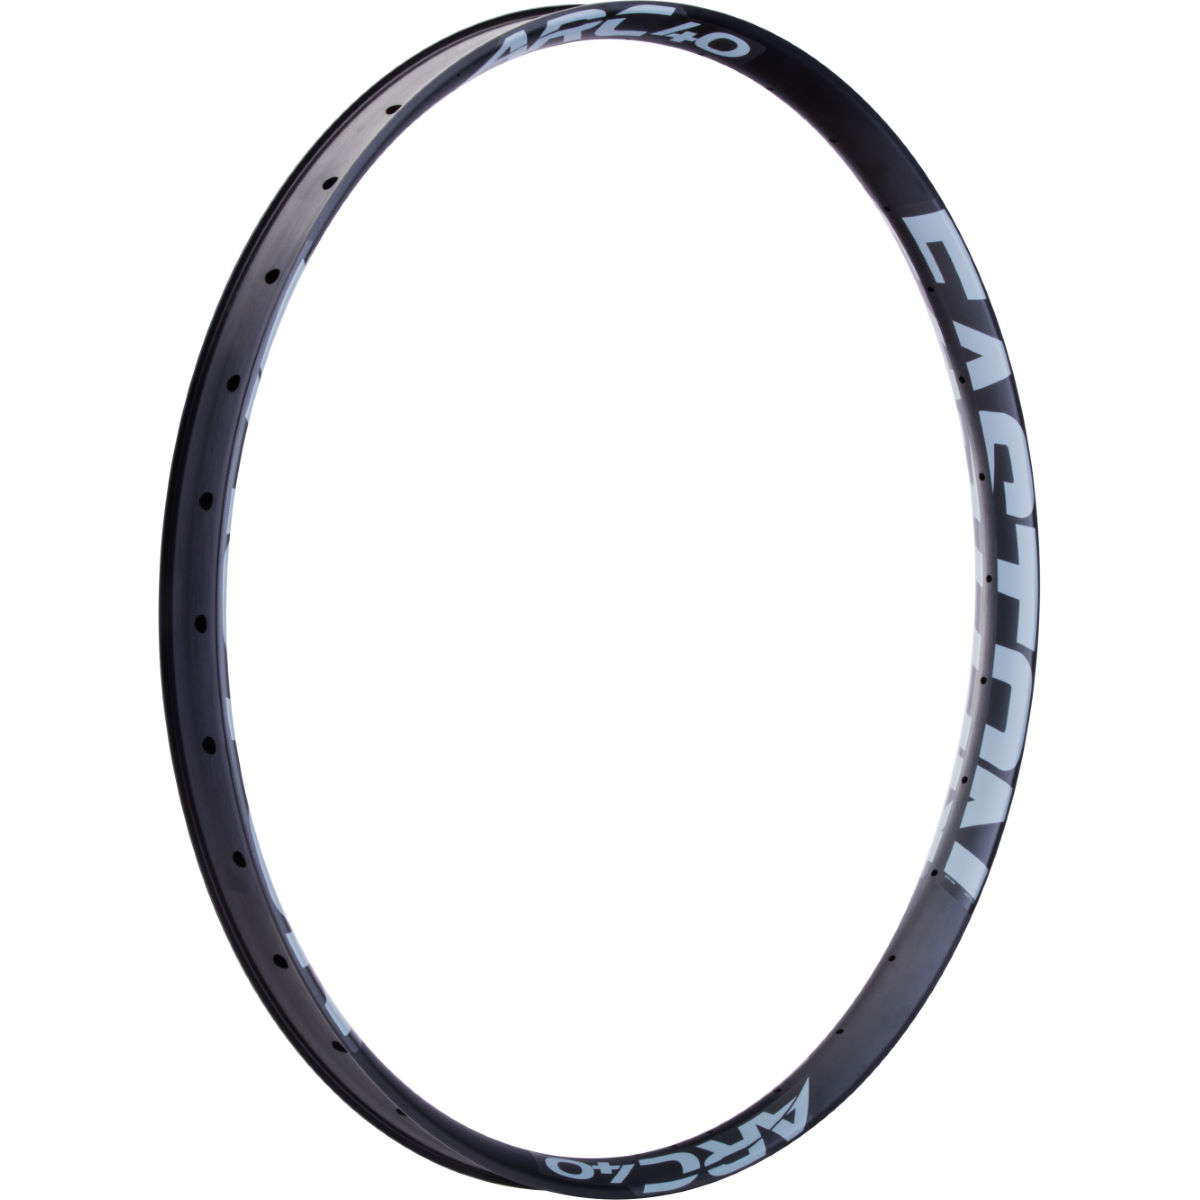 Race Face Arc 40mm Rim   Rims